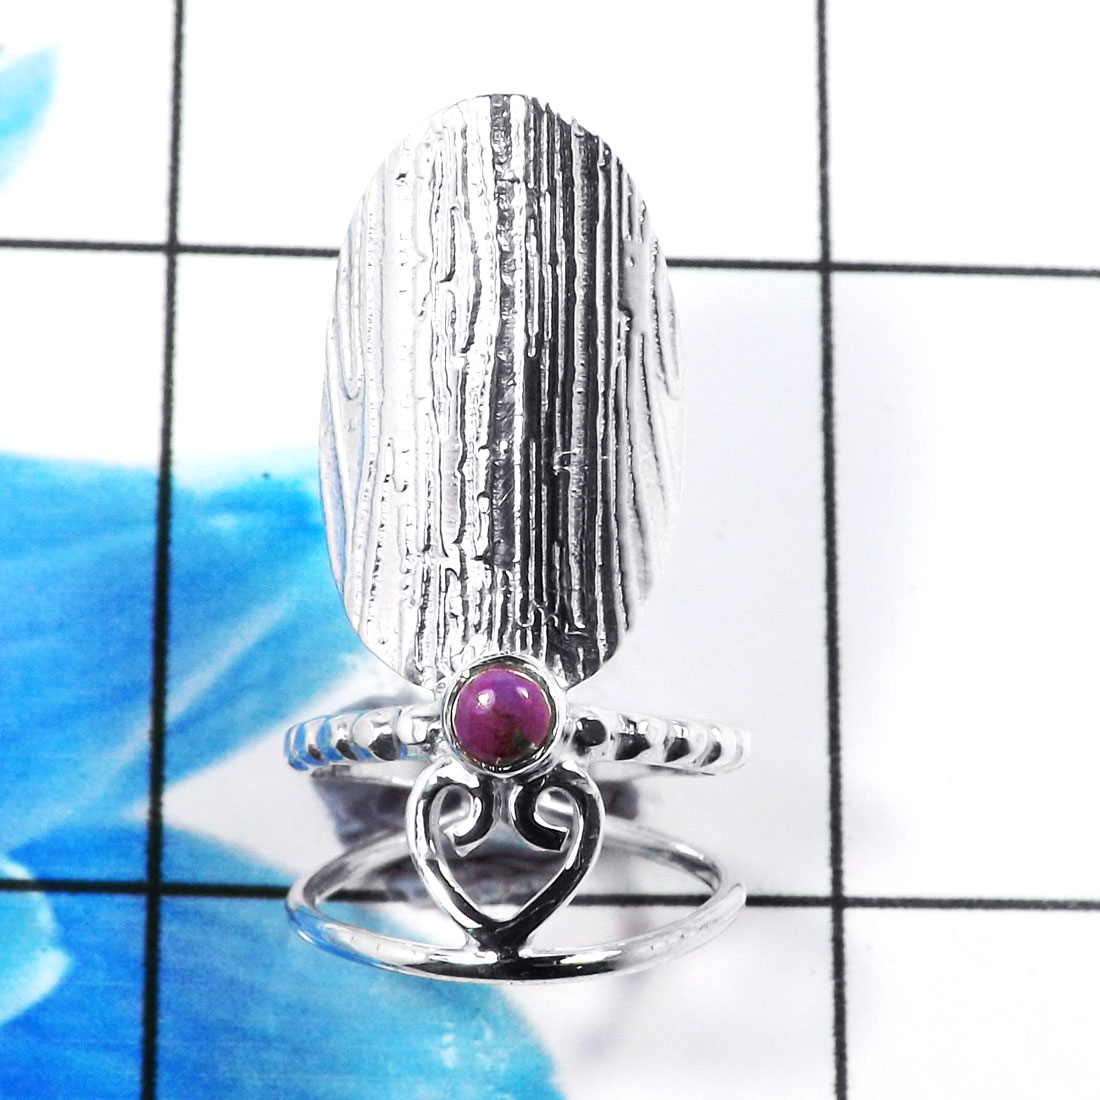 Nails Ring D - SNR993-Charming 925 Sterling Silver Factory Handmade Nails Ring